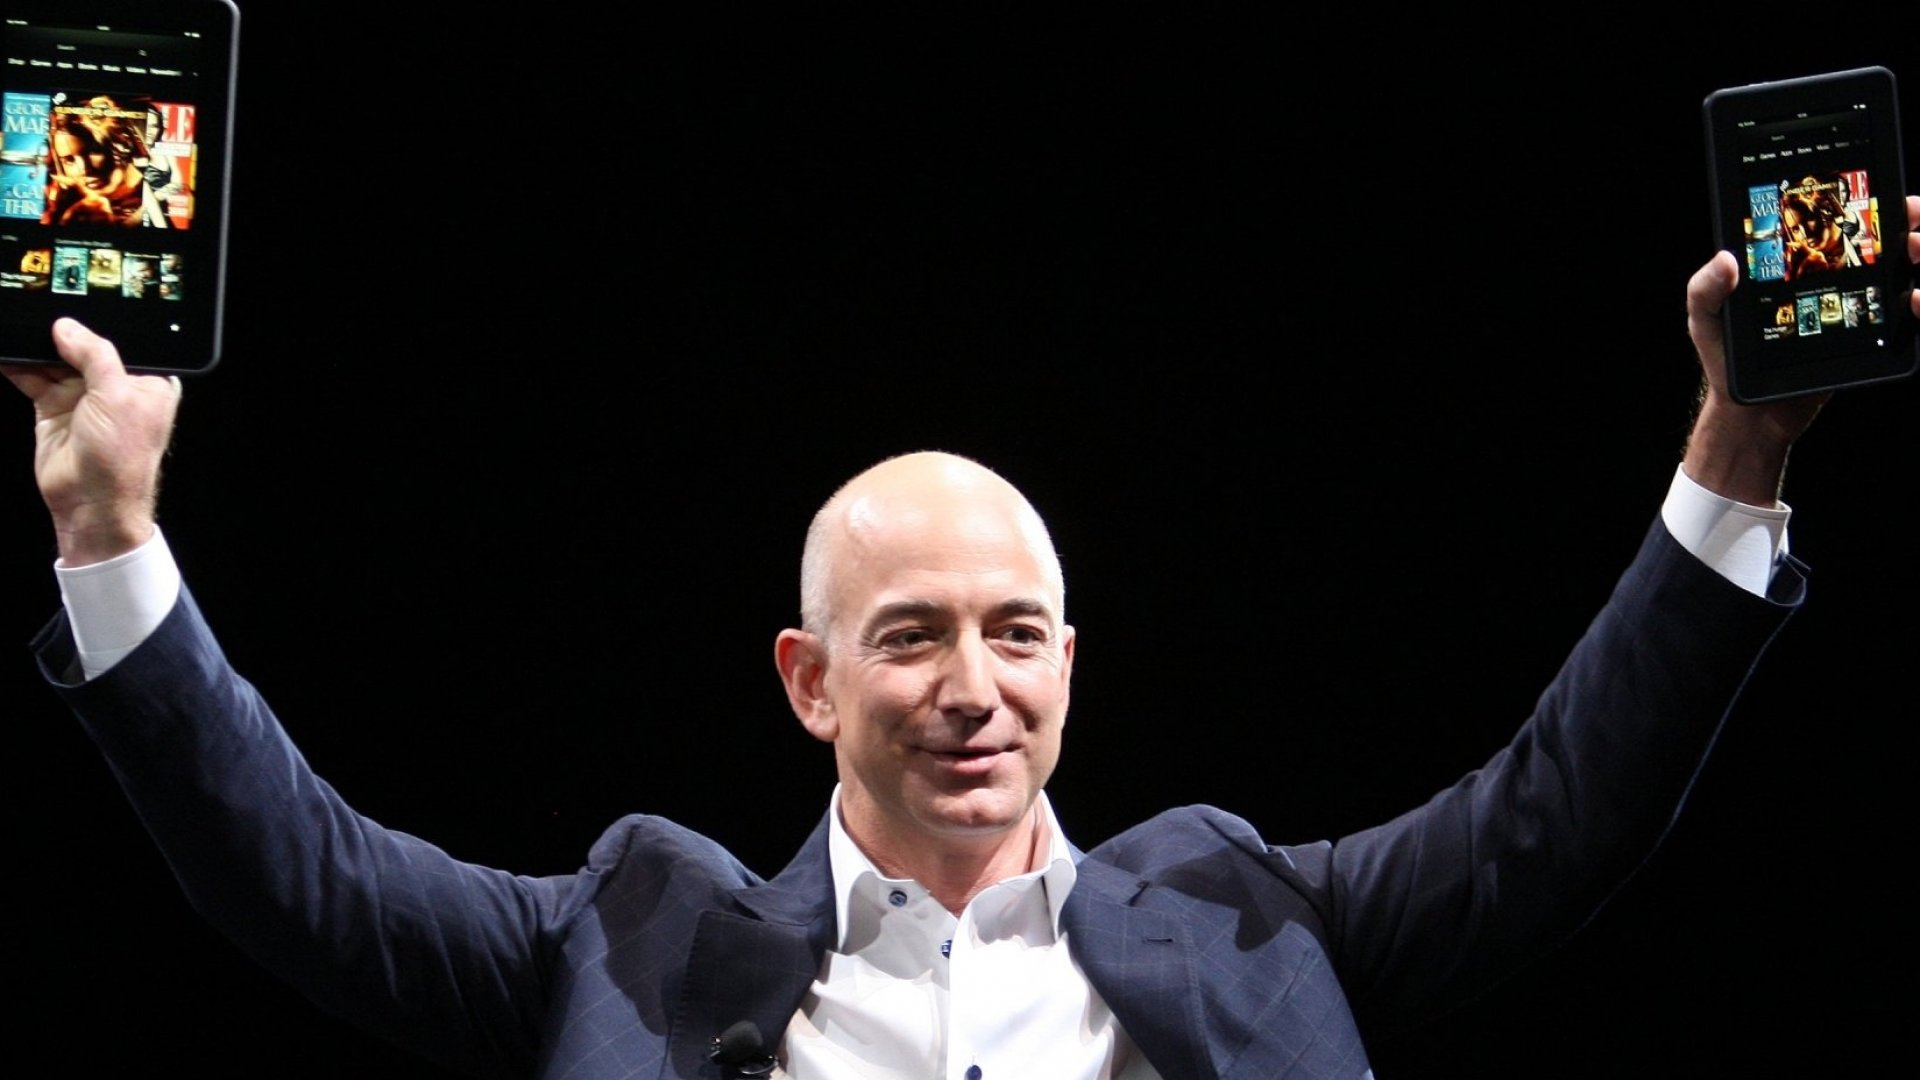 5 Reasons Why Jeff Bezos's Amazon Is Opening Retail Stores (When Everyone Else Is Closing Them)